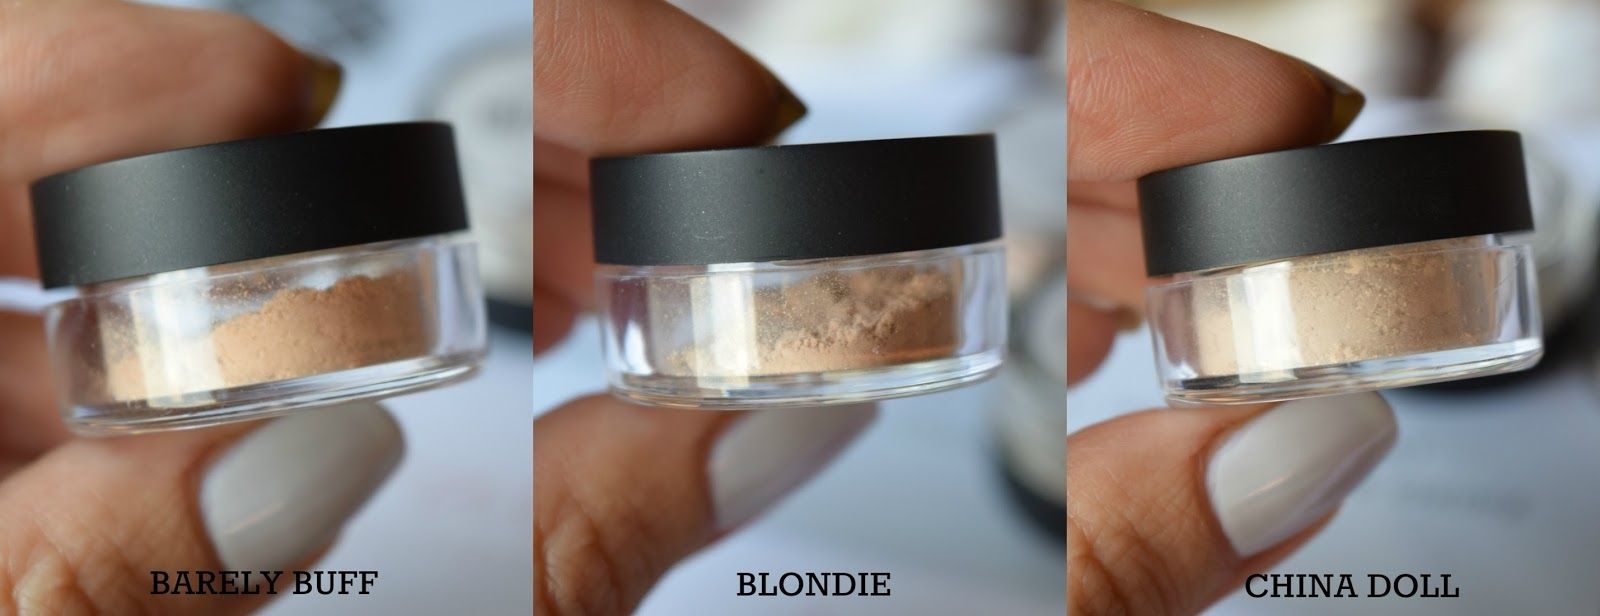 42b5808c4c0 Lily Lolo Mineral Foundation In Shades Barely Buff, Blondie ...